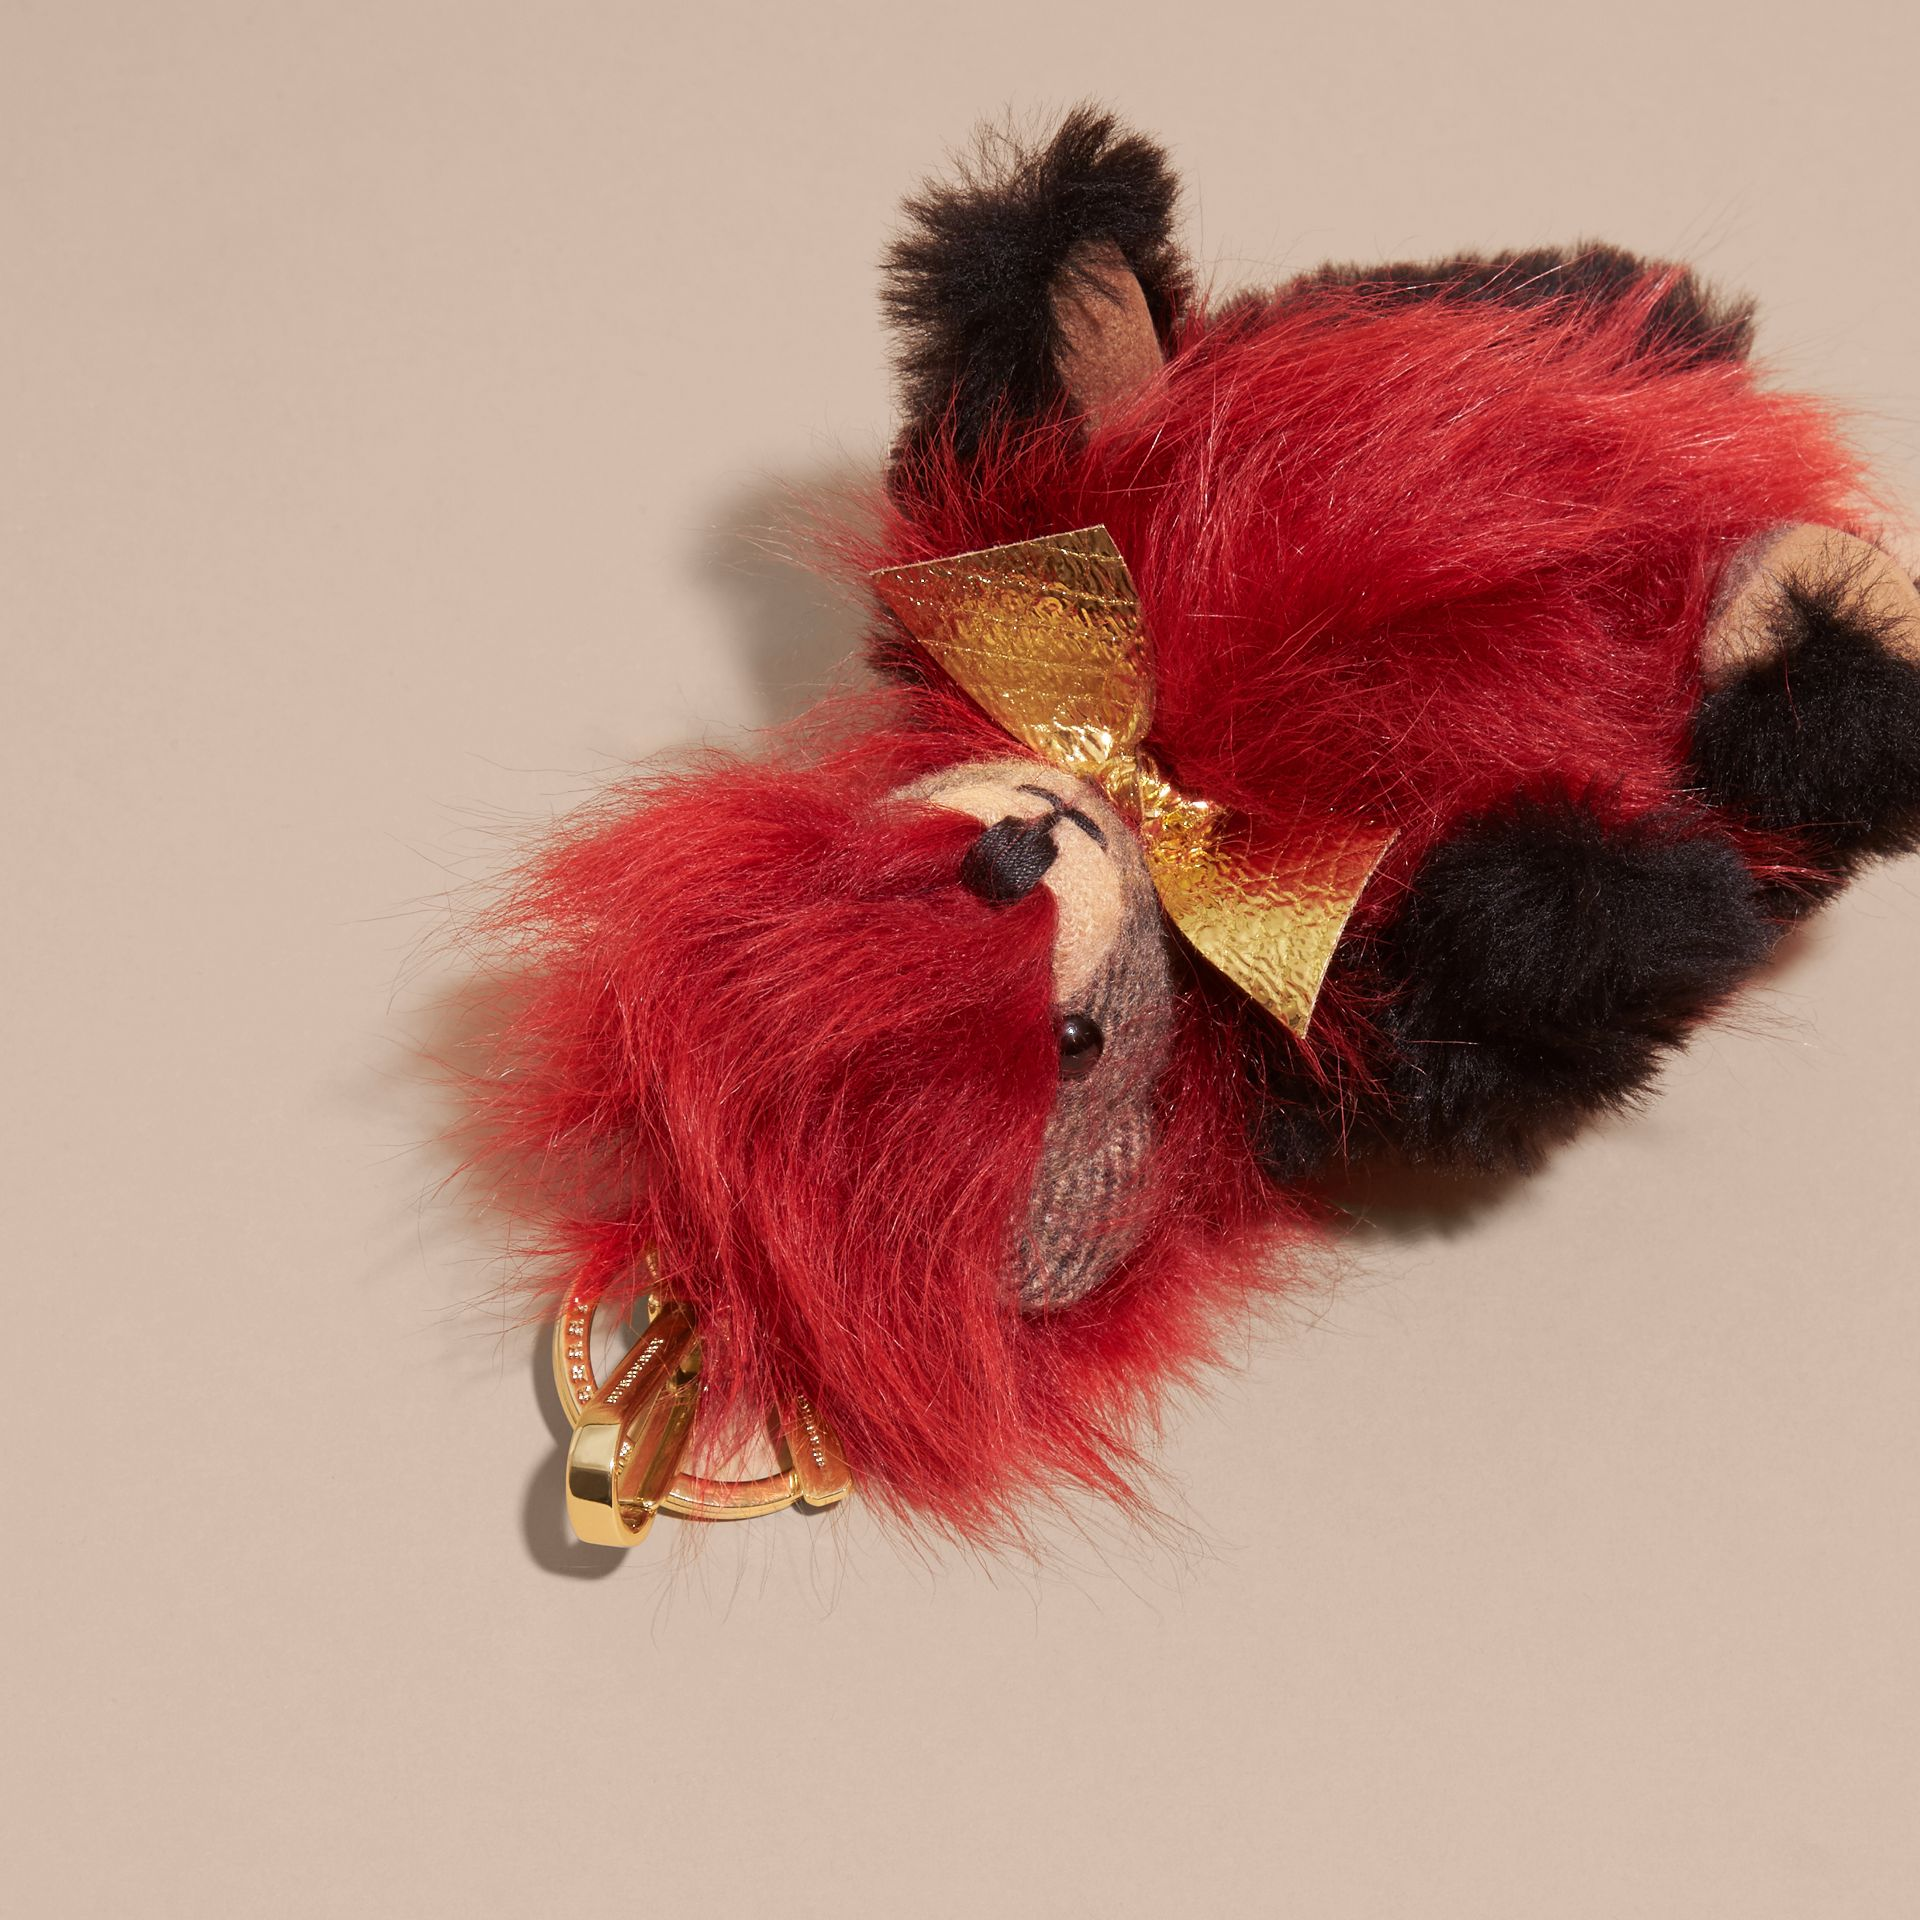 Thomas Bear Pom-Pom Charm in Check Cashmere in Parade Red | Burberry Australia - gallery image 6